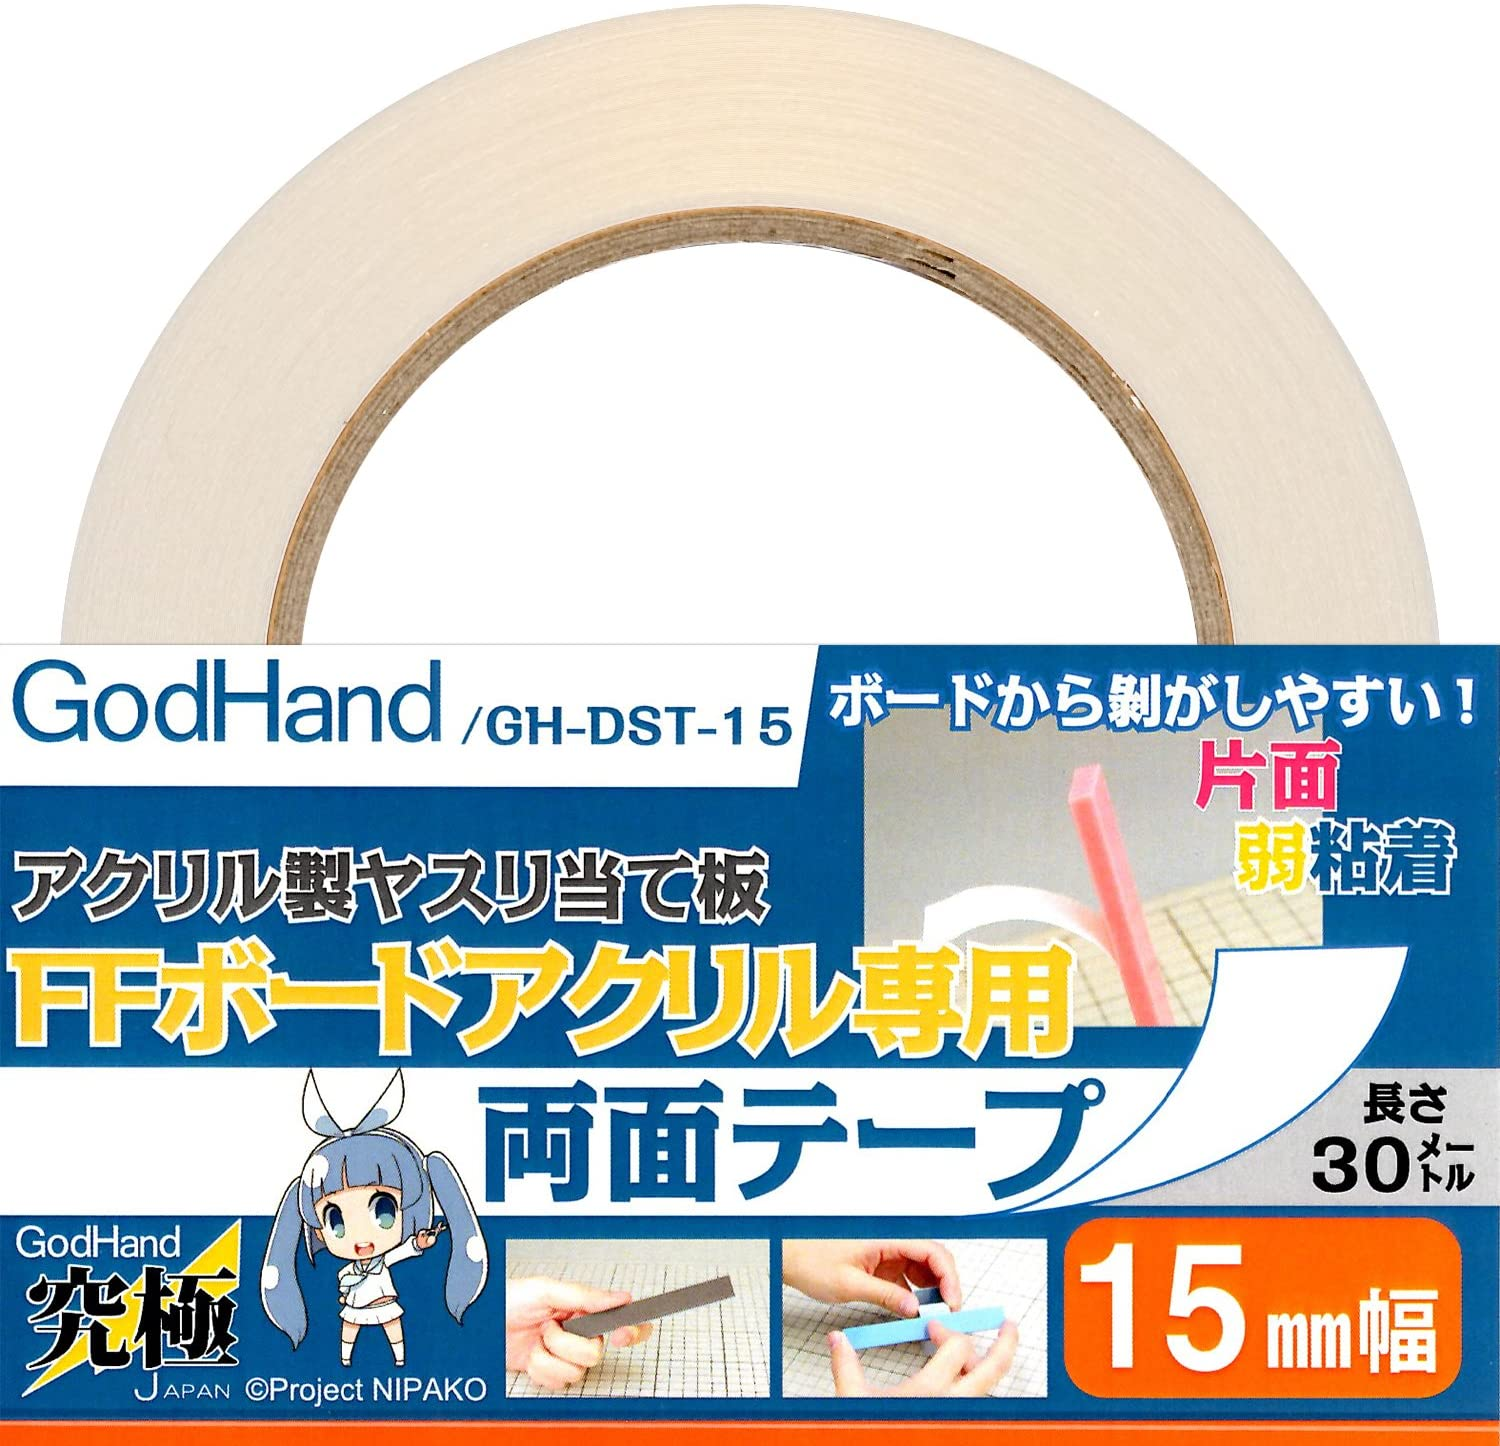 GodHand Double-Sided Tape for FF Board, 15mm Width